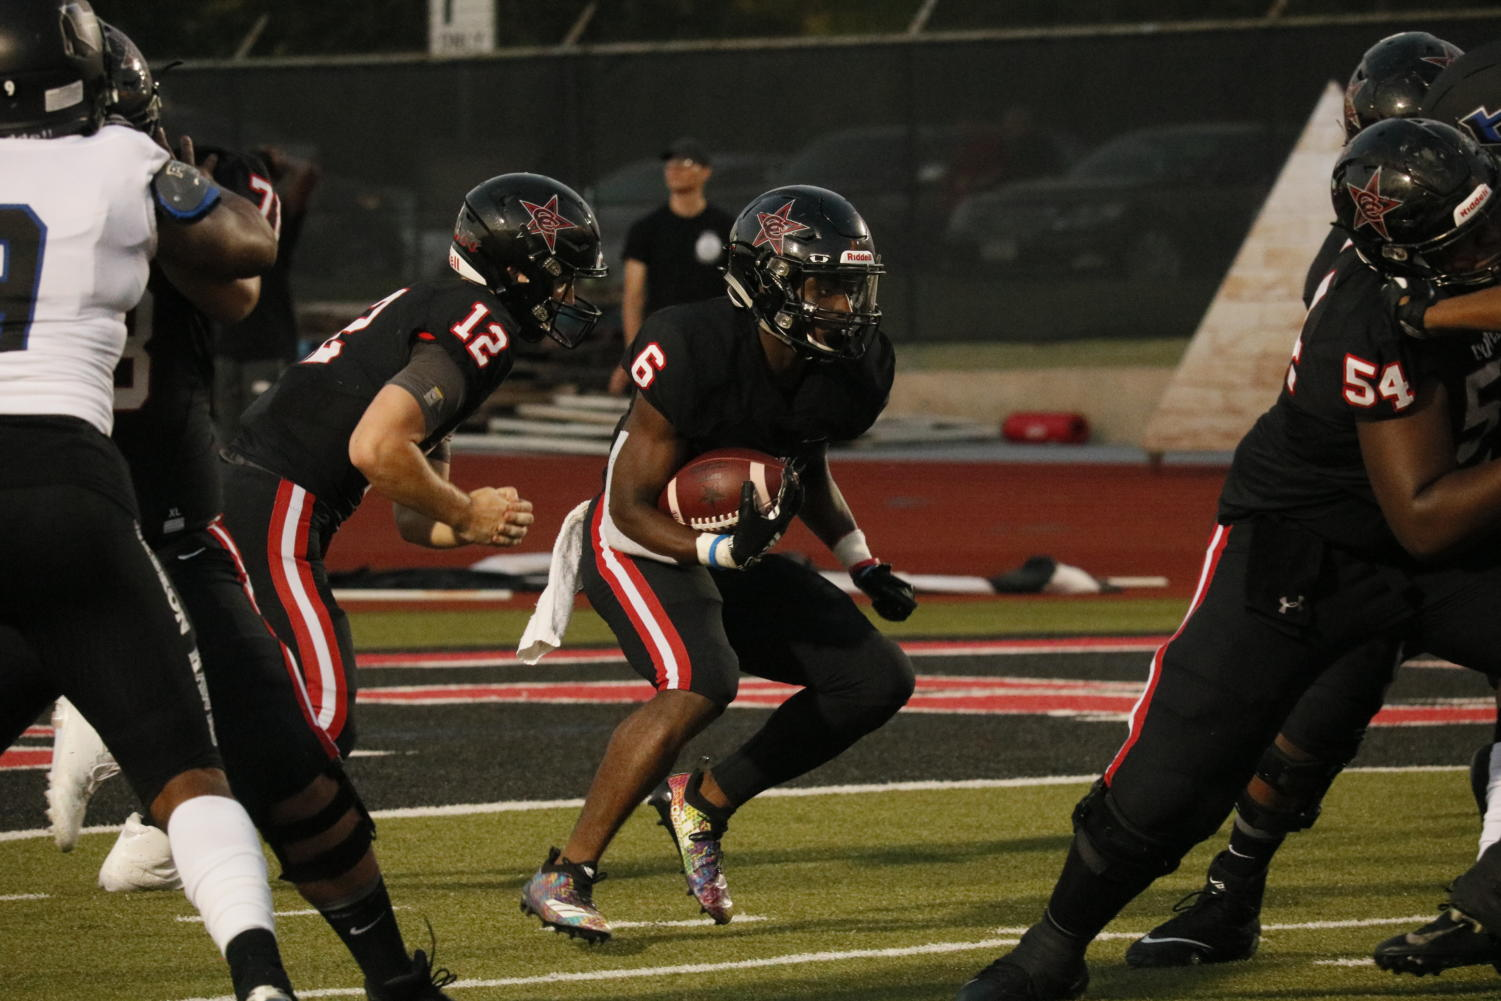 Coppell junior running back Jason Ngwu looks for a gap in the Hebron defense on Friday night at Buddy Echols Field. The Cowboys take on Lewisville tomorrow at 7 p.m. at Buddy Echols Field.